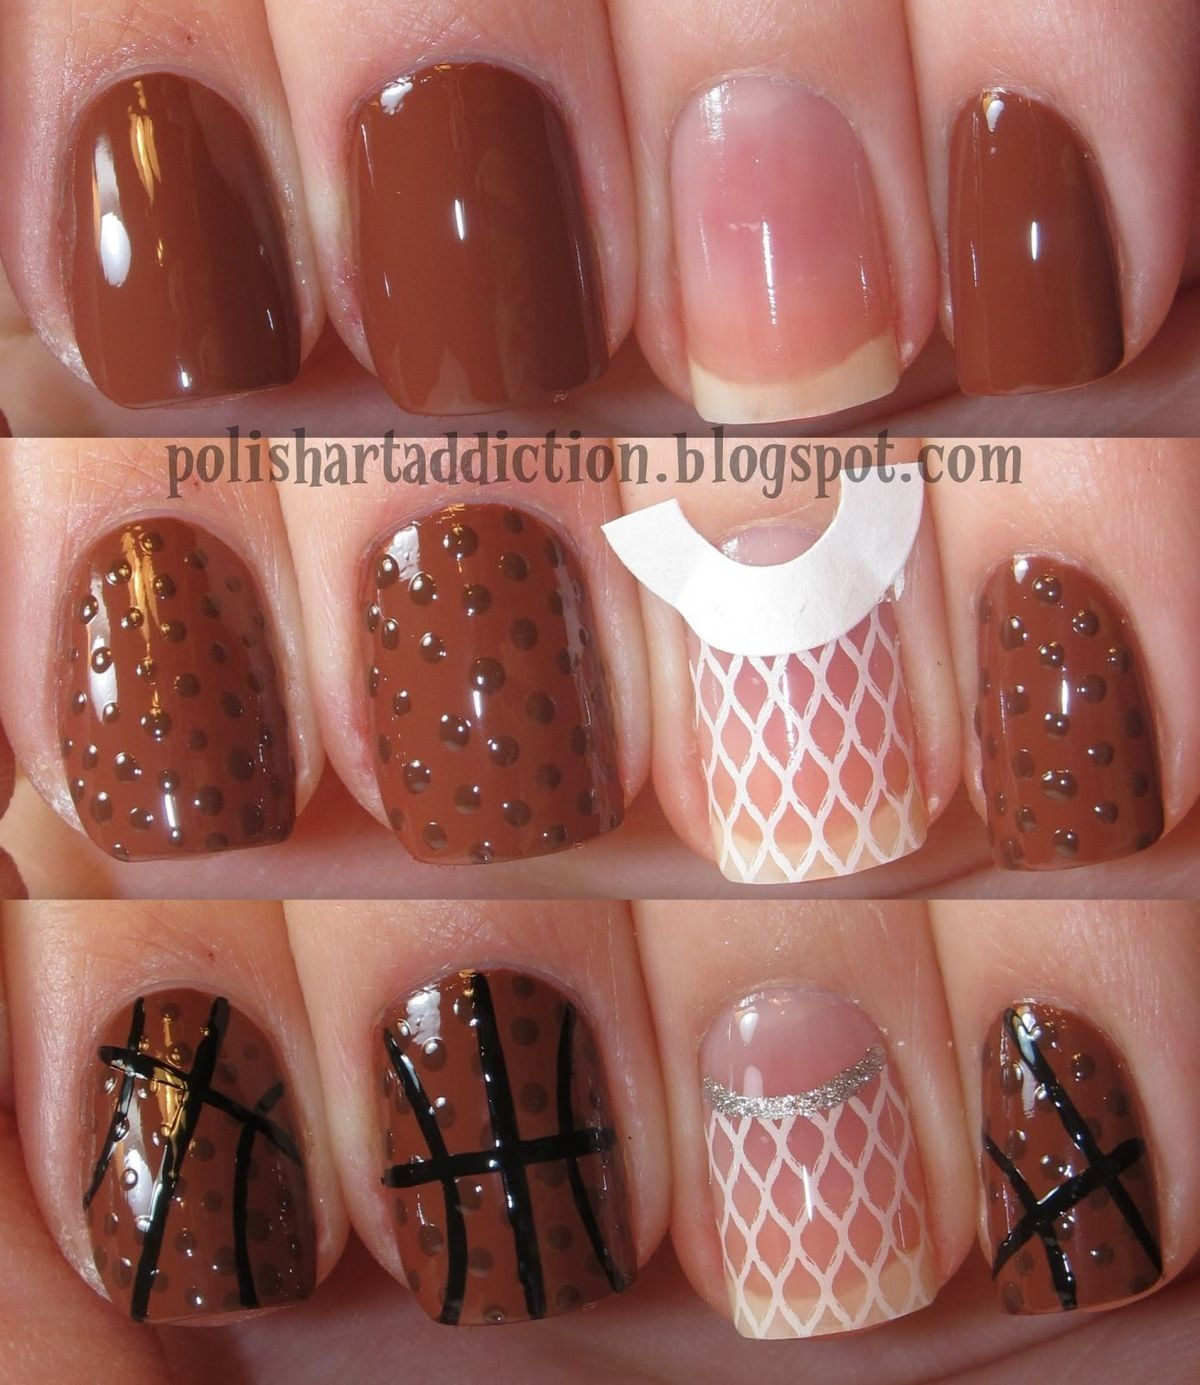 Cute Nail Art Designs Games For Girls: Best 25+ Basketball Nails Ideas On Pinterest